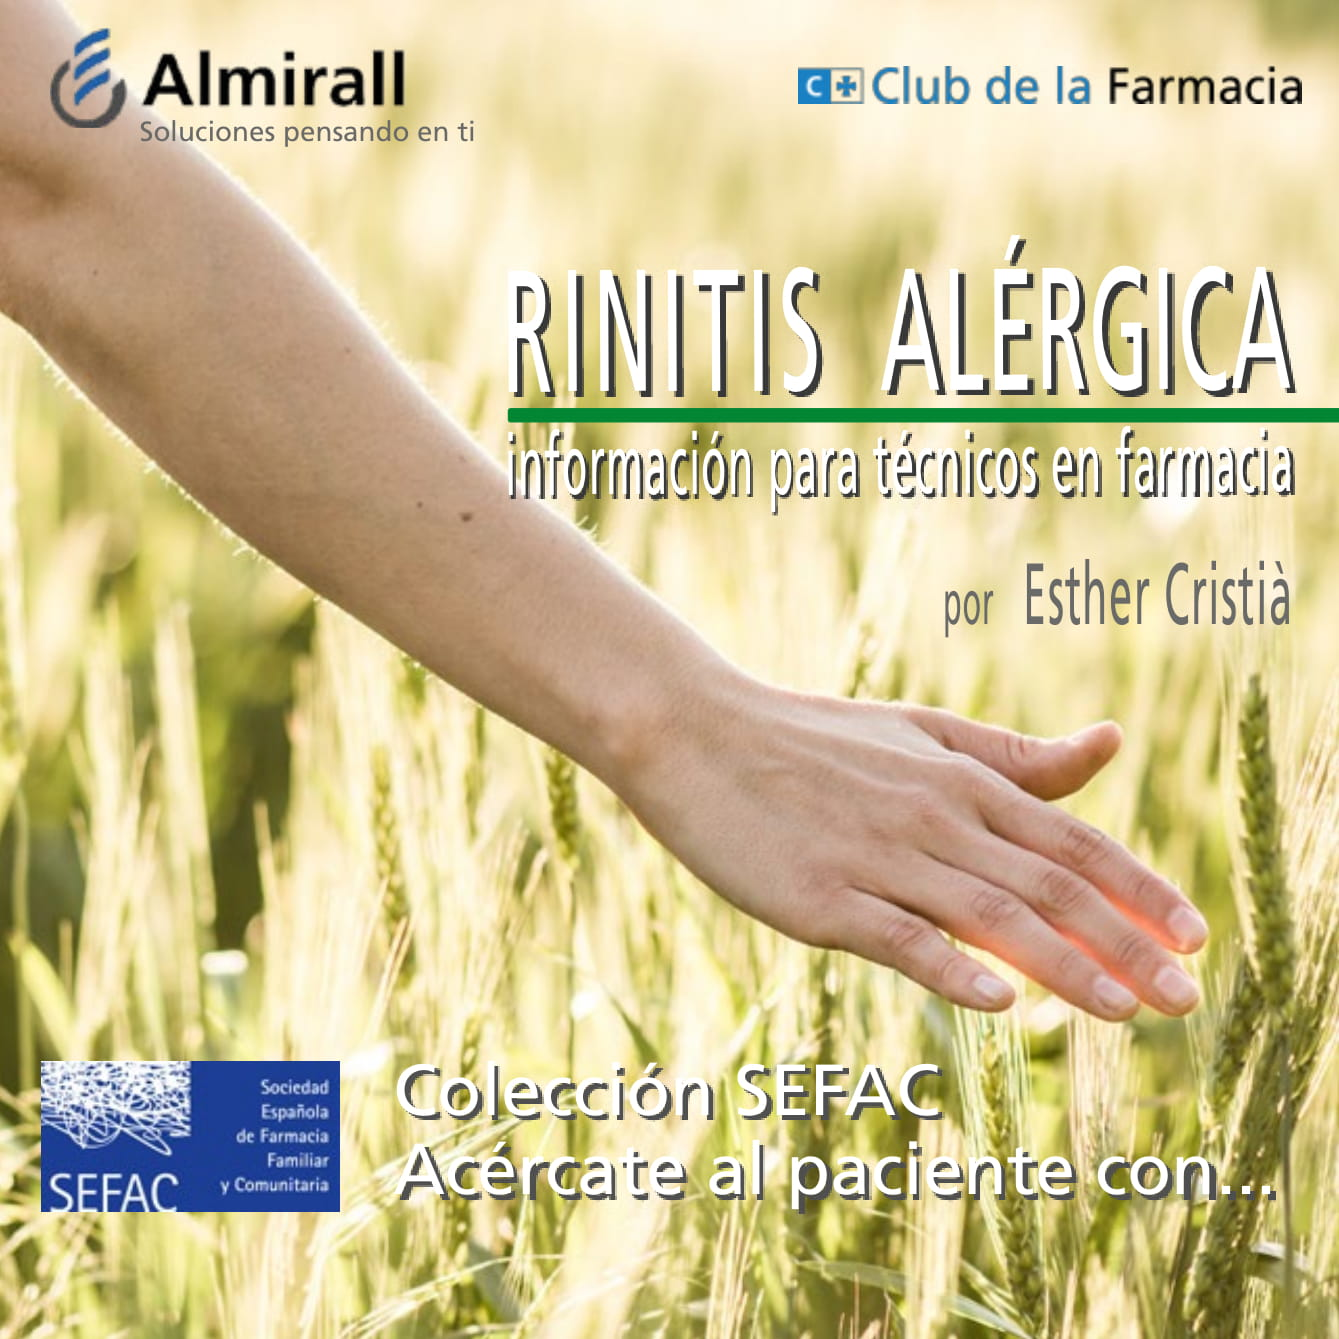 Ebooks-Club de la Farmacia-24.jpg